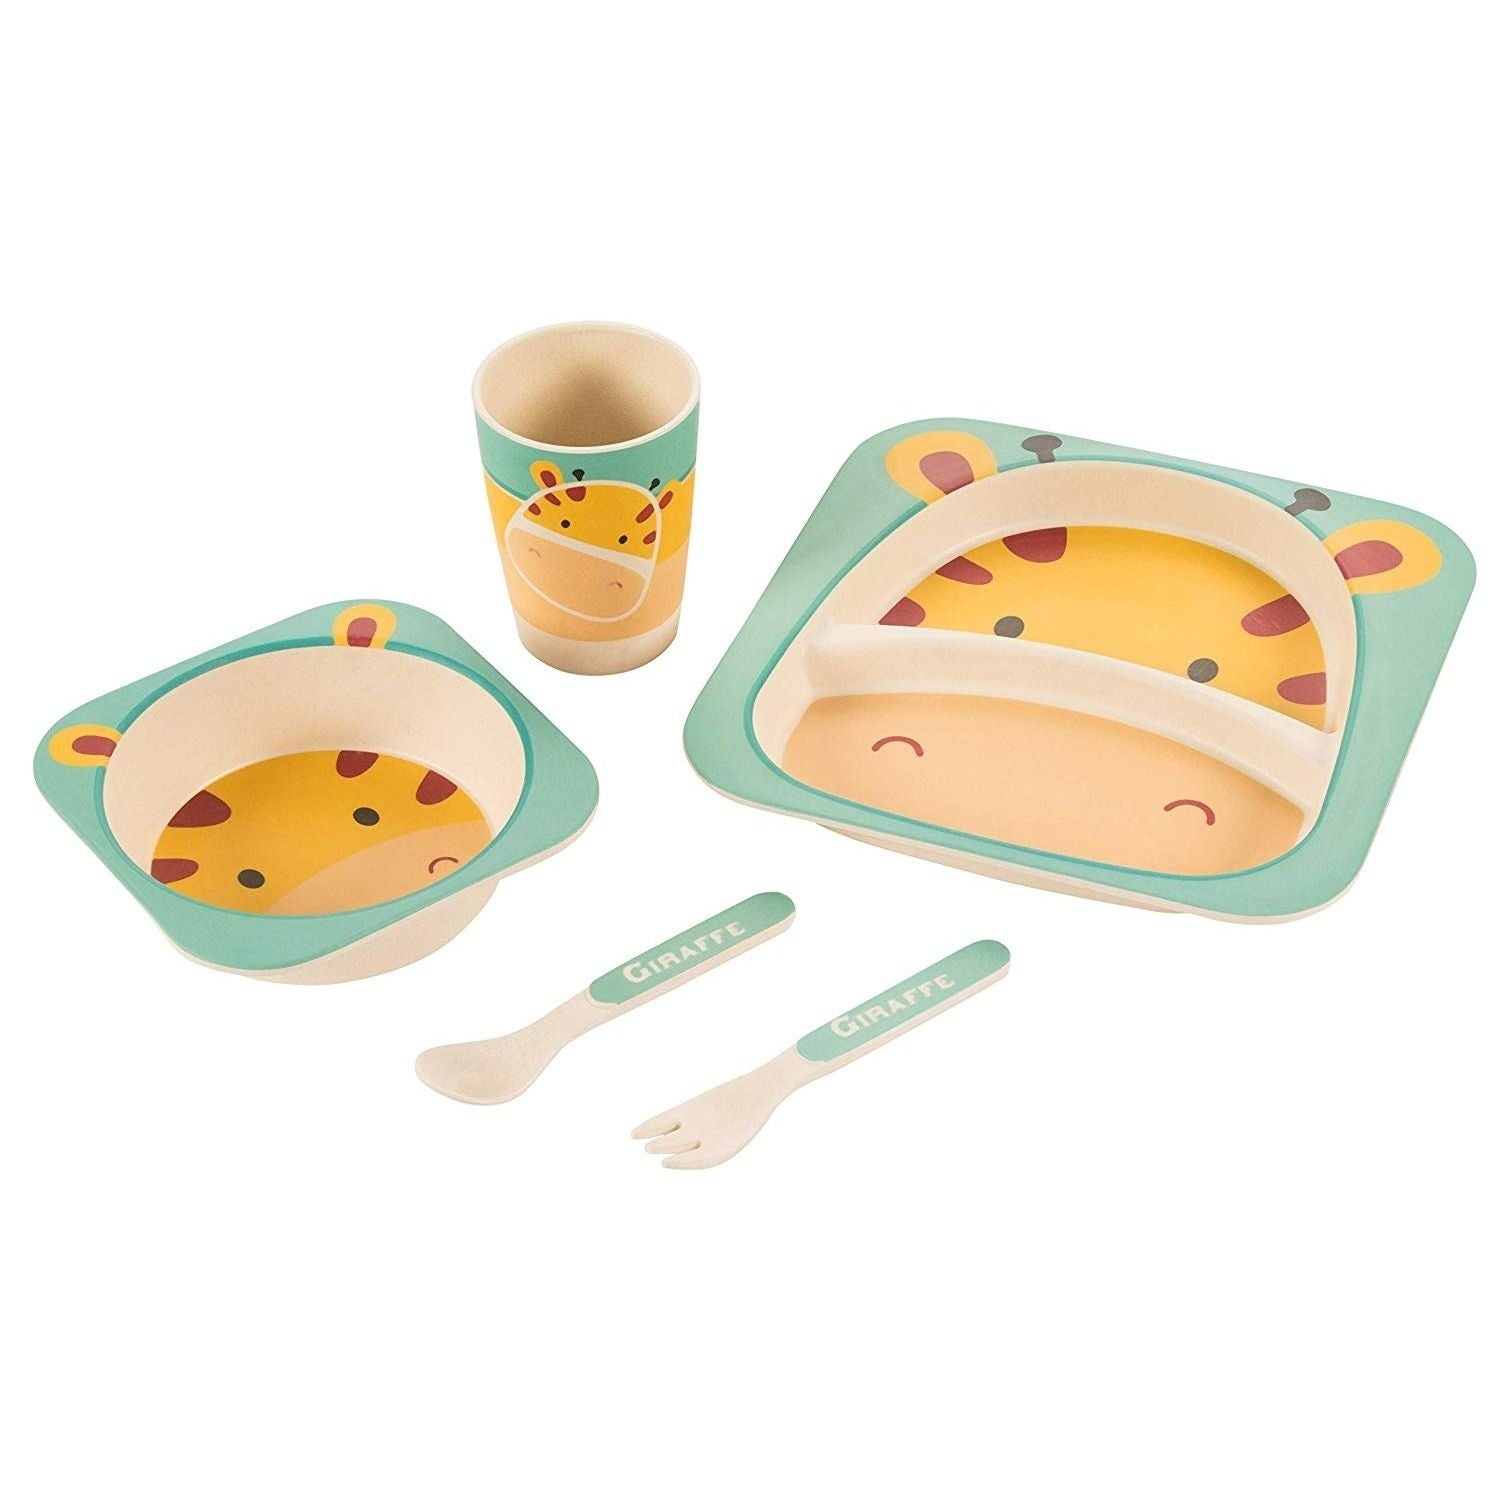 BPA-Free Spoons, Forks and Knives - Reusable Cuddly Hippo Kids Plastic Dinnerware Set of 18 Multi Color Flatware Dishwasher Safe and Microwaveable